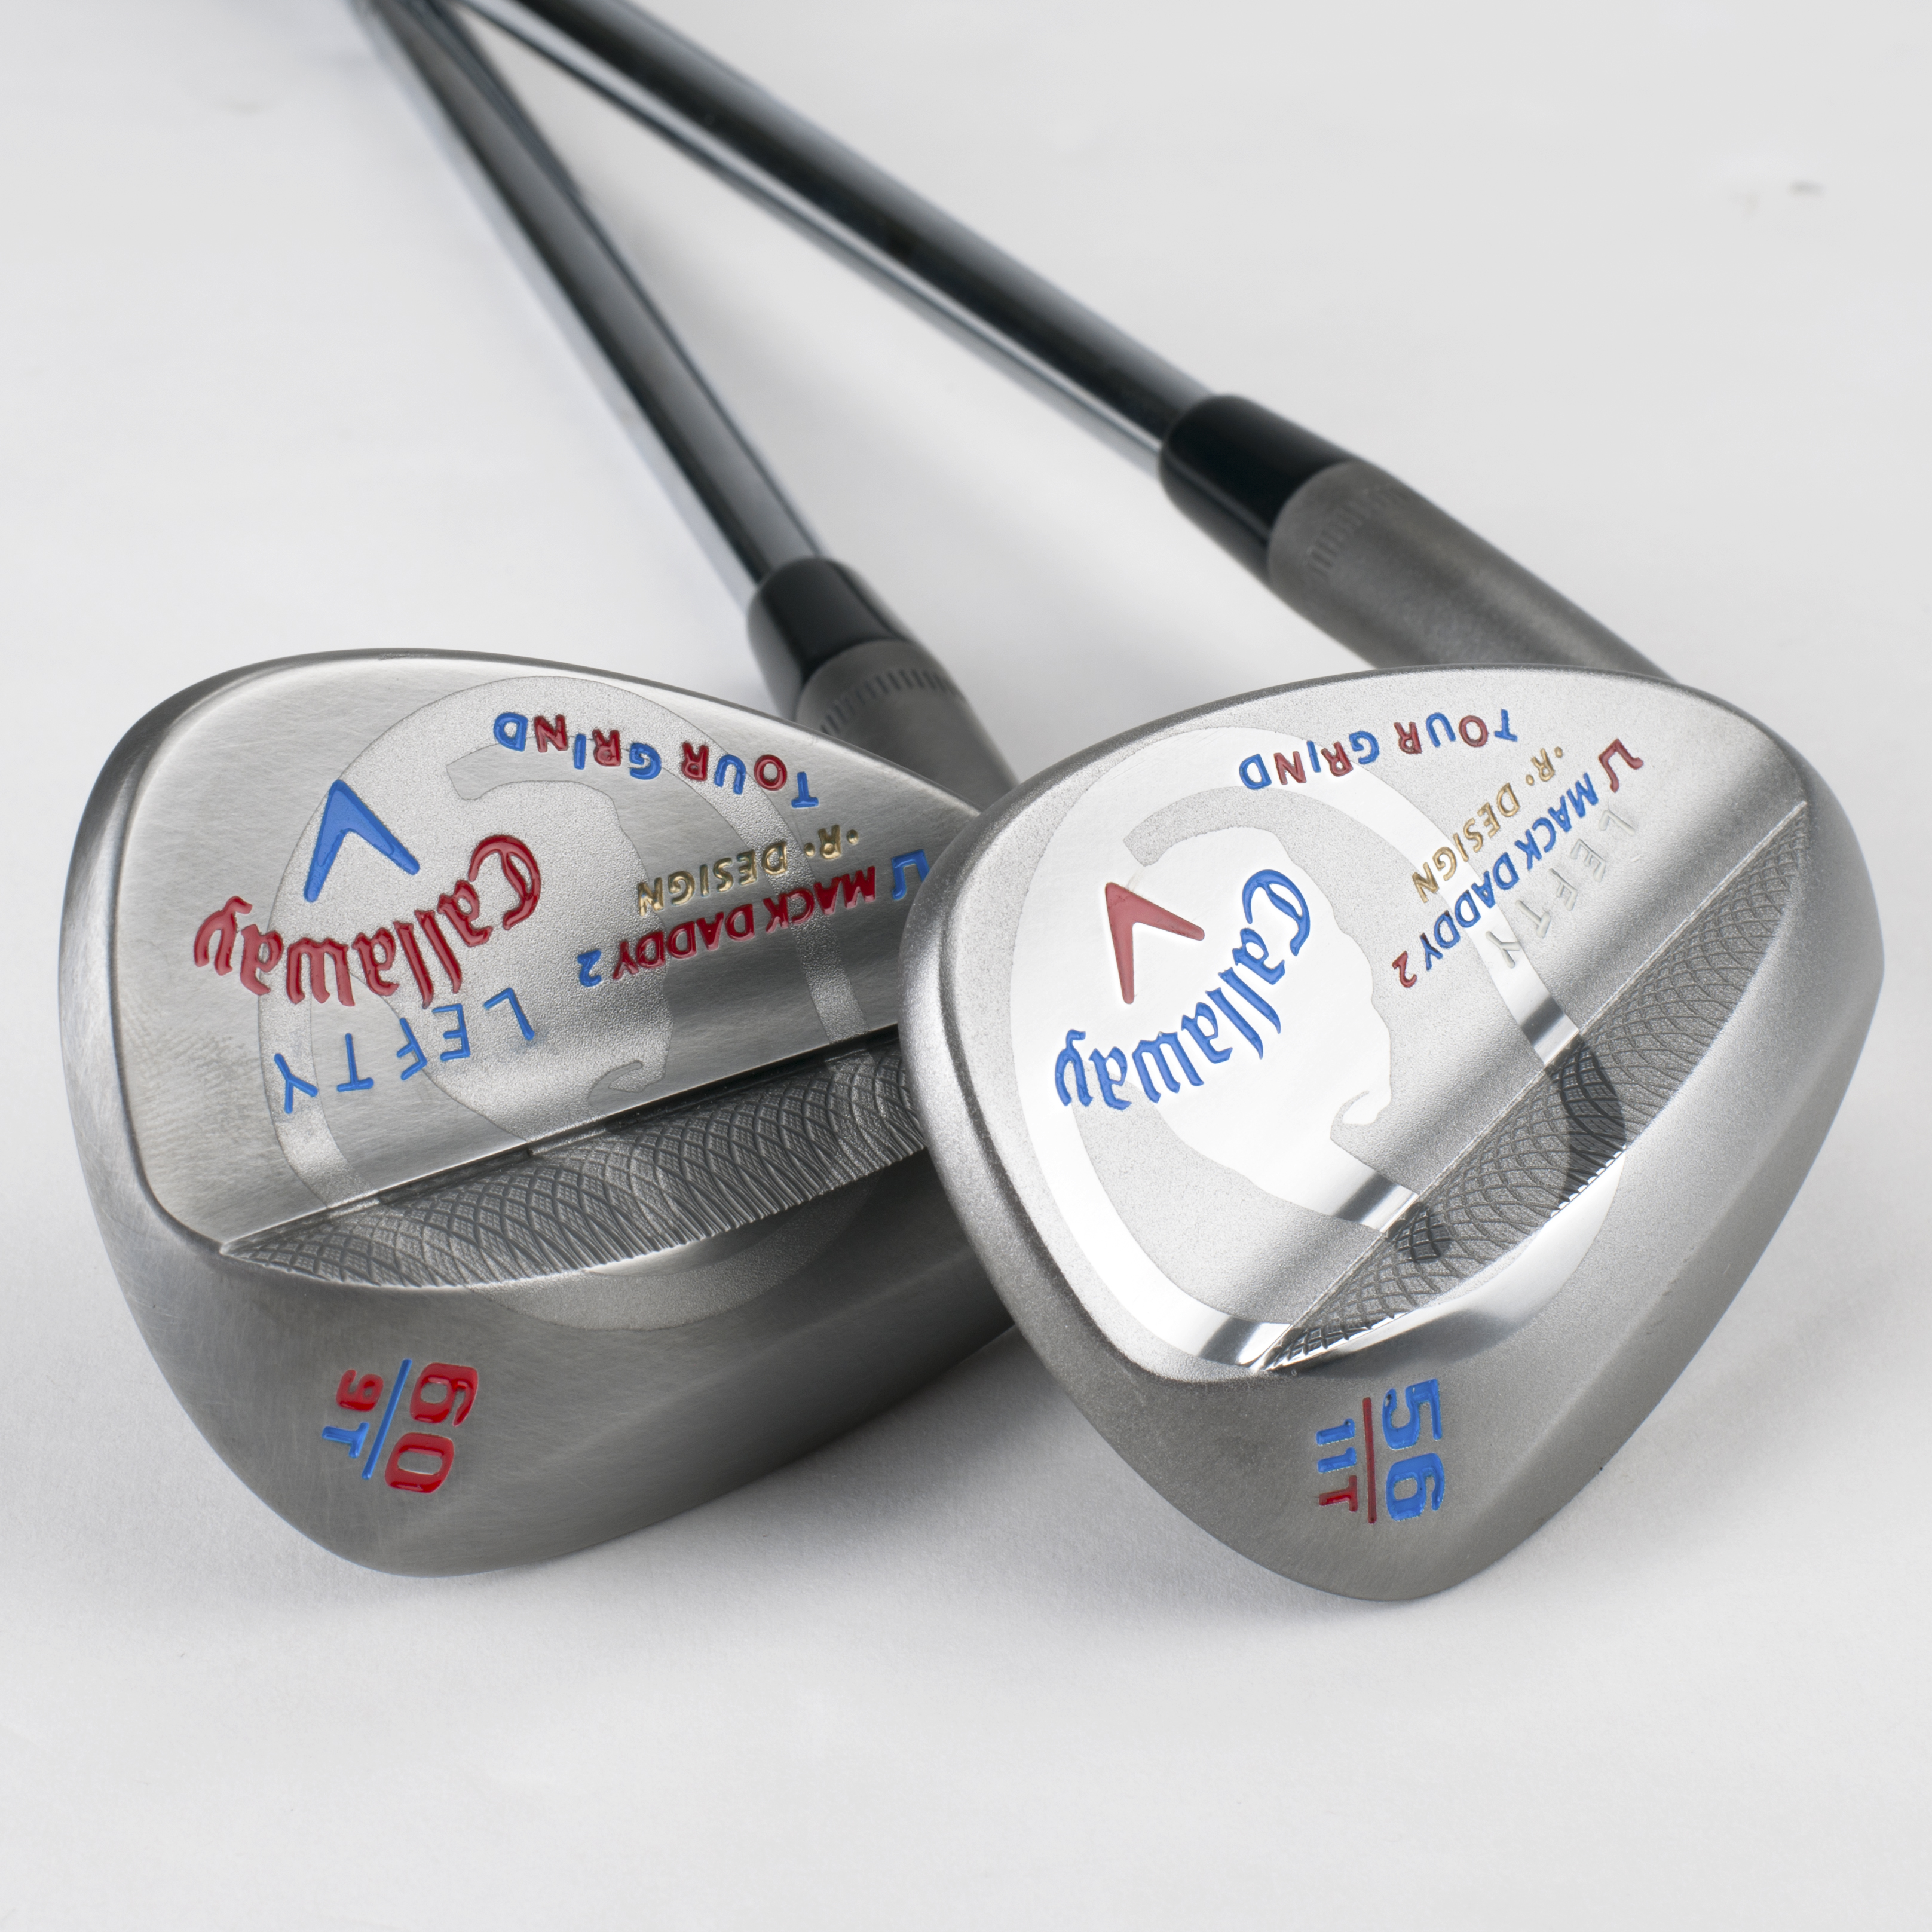 Callaway Mack Daddy 2 wedges made for Phil Mickelson commemorate his 2013 British Open victory. Notice the thumbs up. The wedges Phil uses in competition are not stamped.